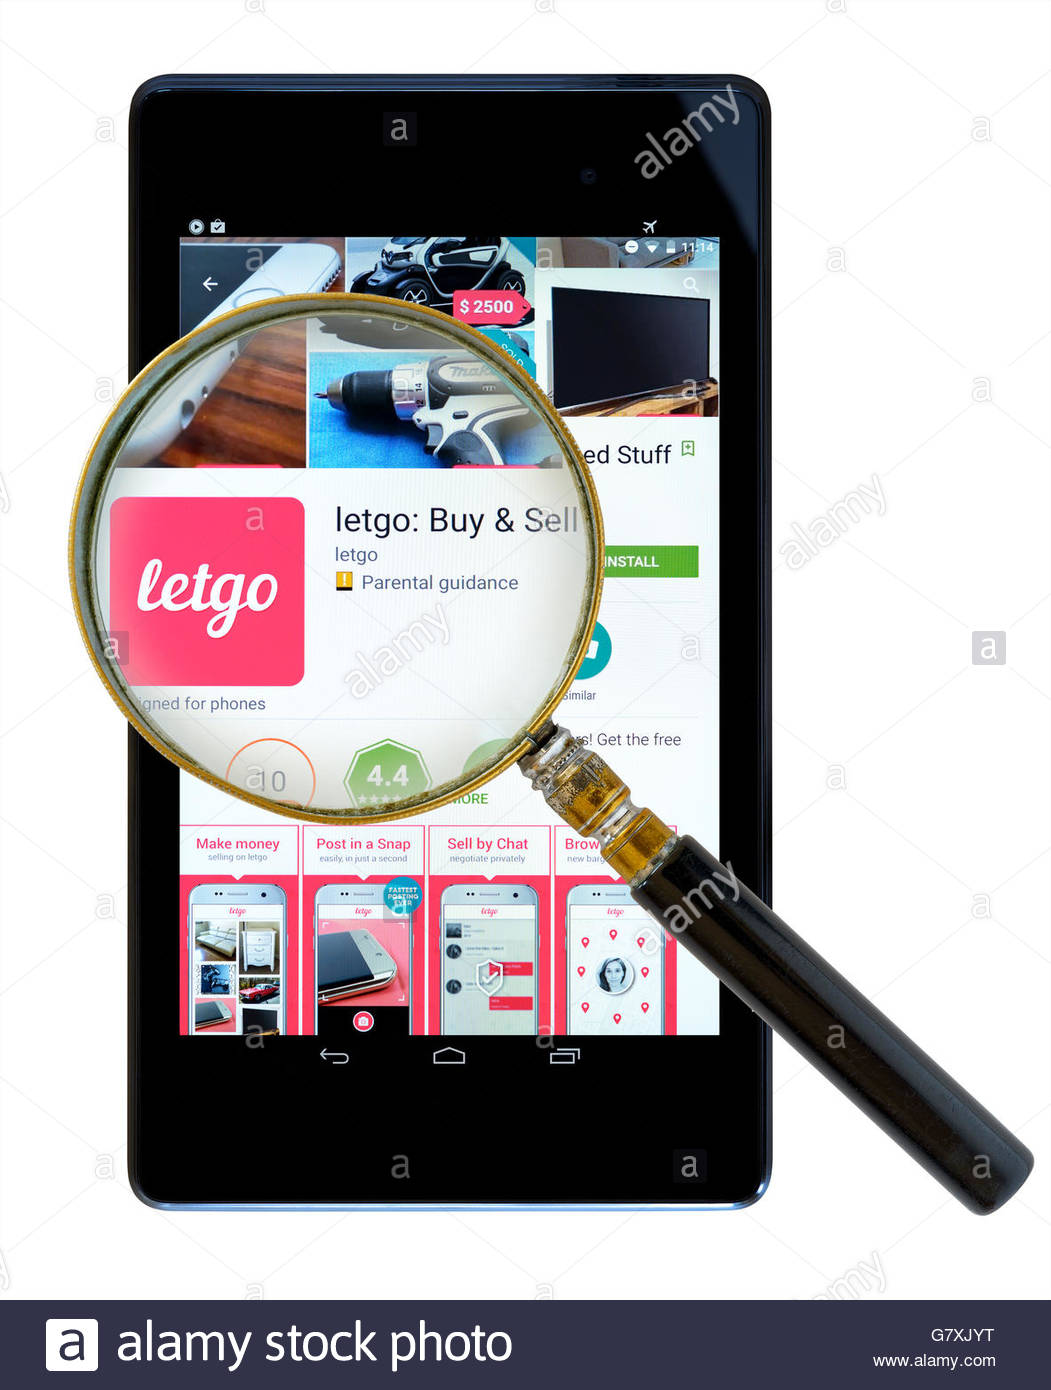 Letgo buy and sell secondhand items, app shown on a tablet computer, Dorset, England, UK - Stock Image